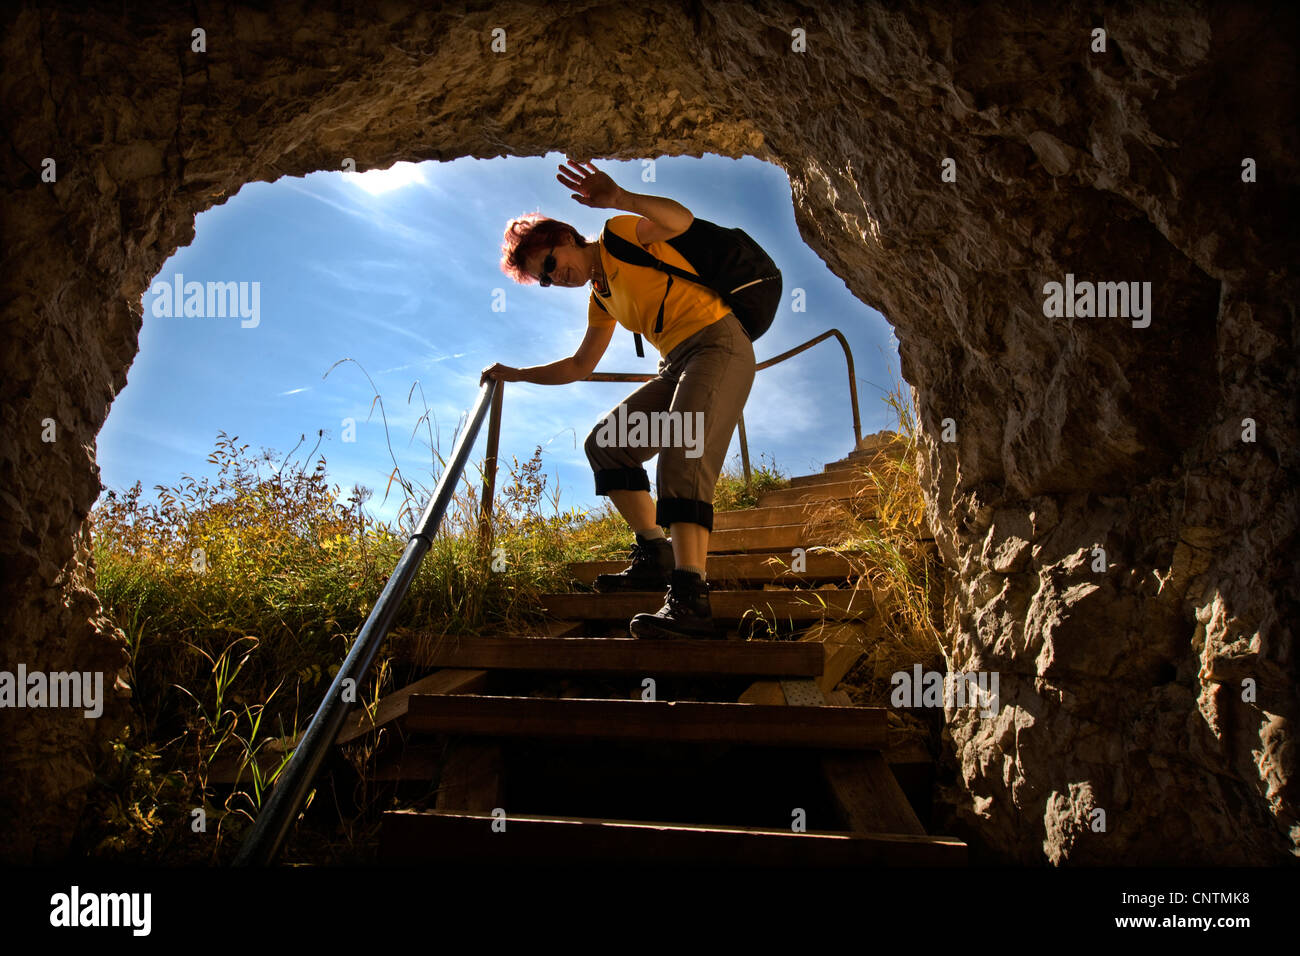 woman on steep stair on Thomas-Eder-Steig, Untersberg, Germany, Bavaria, Berchtesgadener Land, Markt Schellenberg - Stock Image